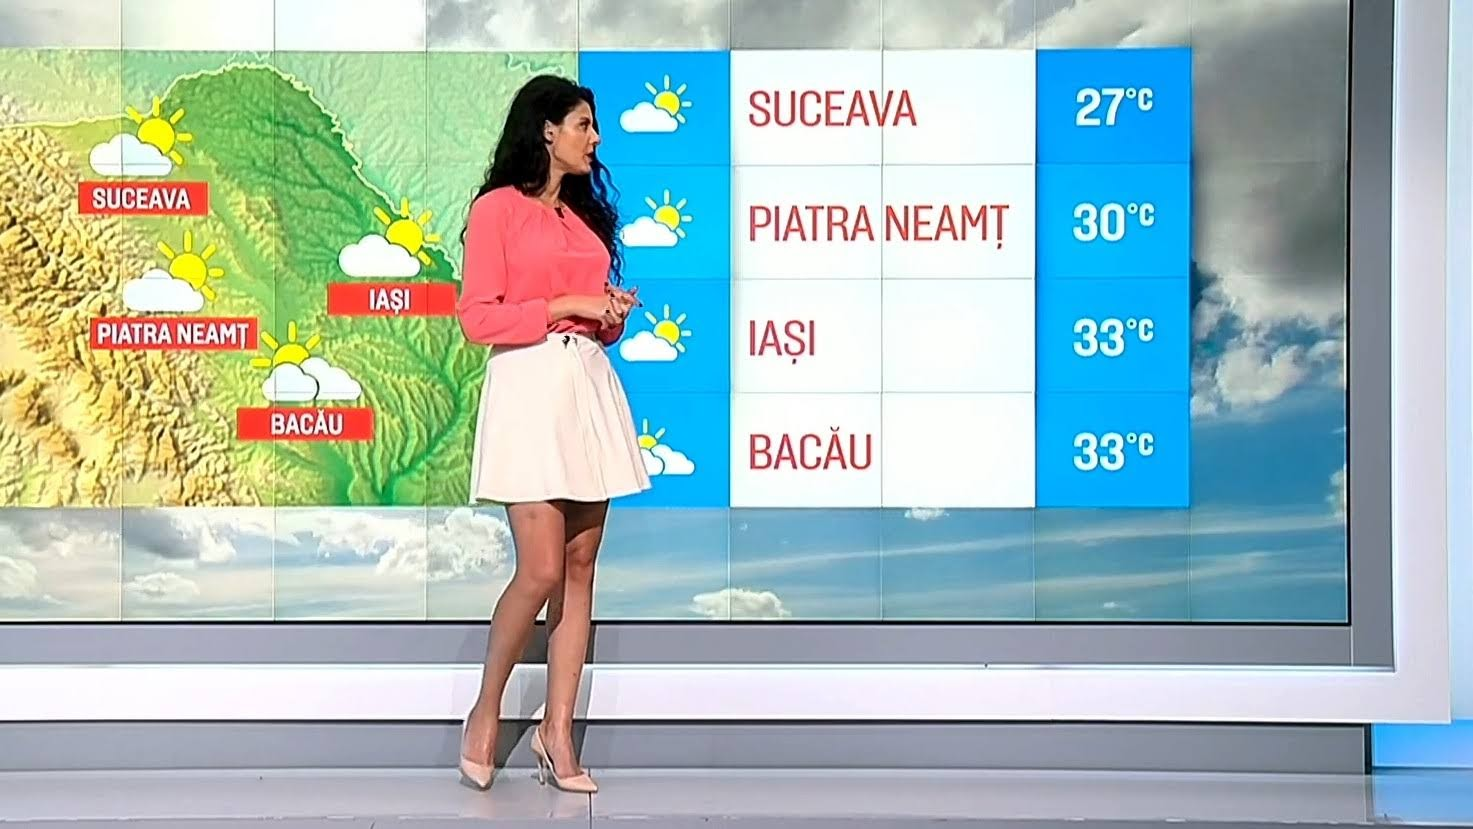 This weather girl is a real pleasure to watch